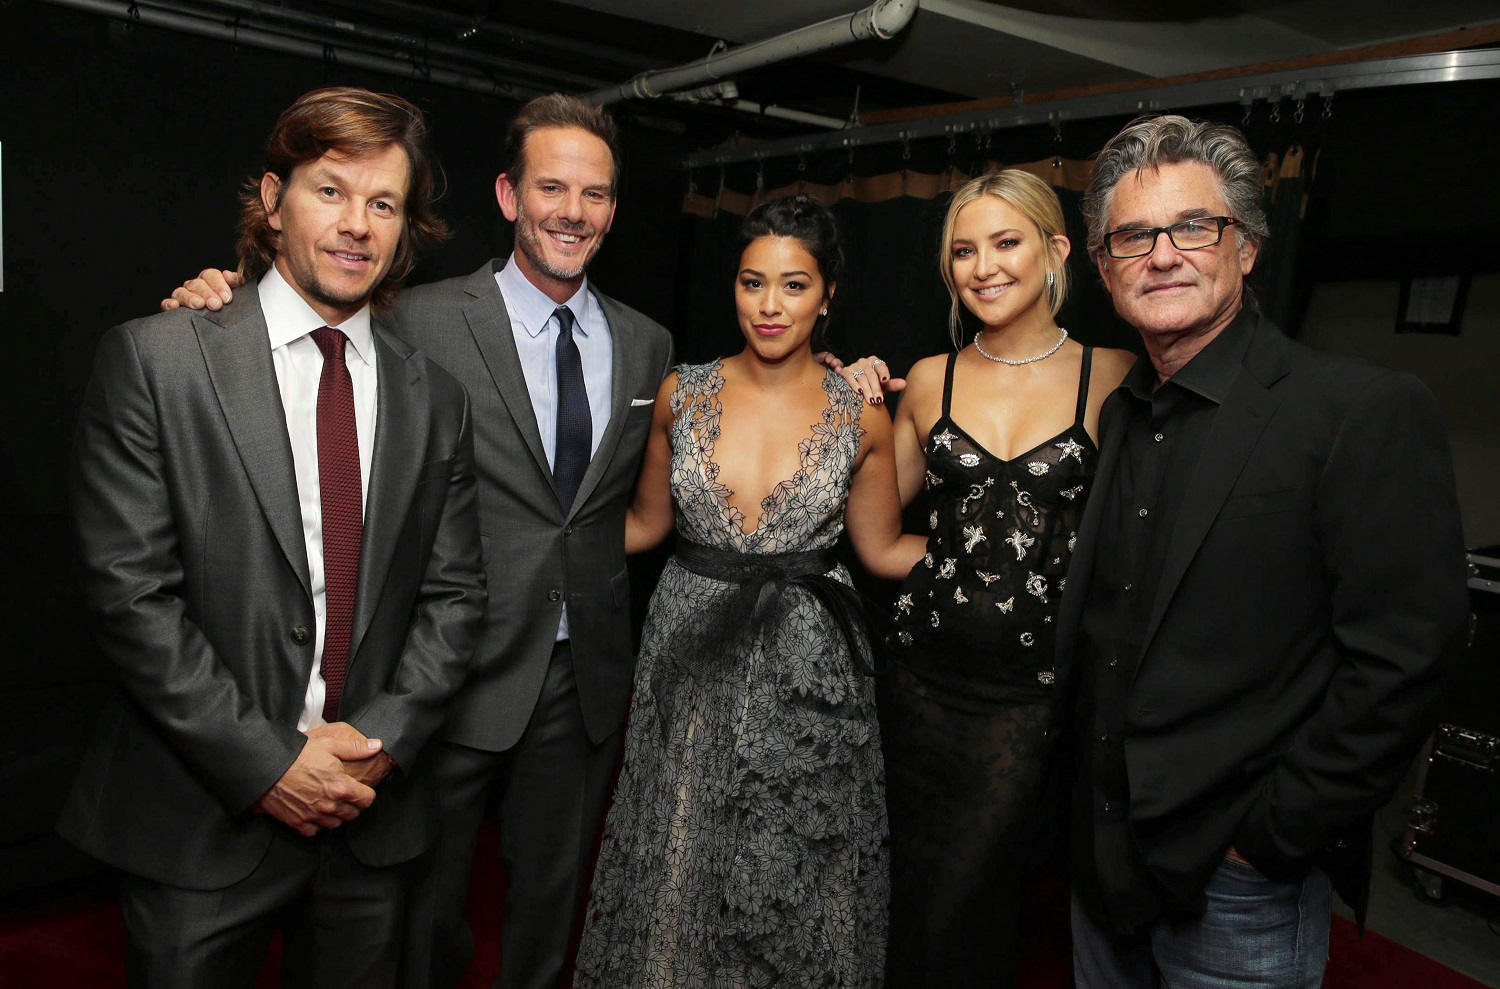 """Mark Wahlberg, Director Peter Berg, Gina Rodriguez, Kate Hudson and Kurt Russell seen at Lionsgate's """"Deepwater Horizon"""" premiere at the 2016 Toronto International Festival on Tuesday, Sept. 13, 2016, in Toronto. (Photo by Eric Charbonneau/Invision for LionsgateAP Images)"""